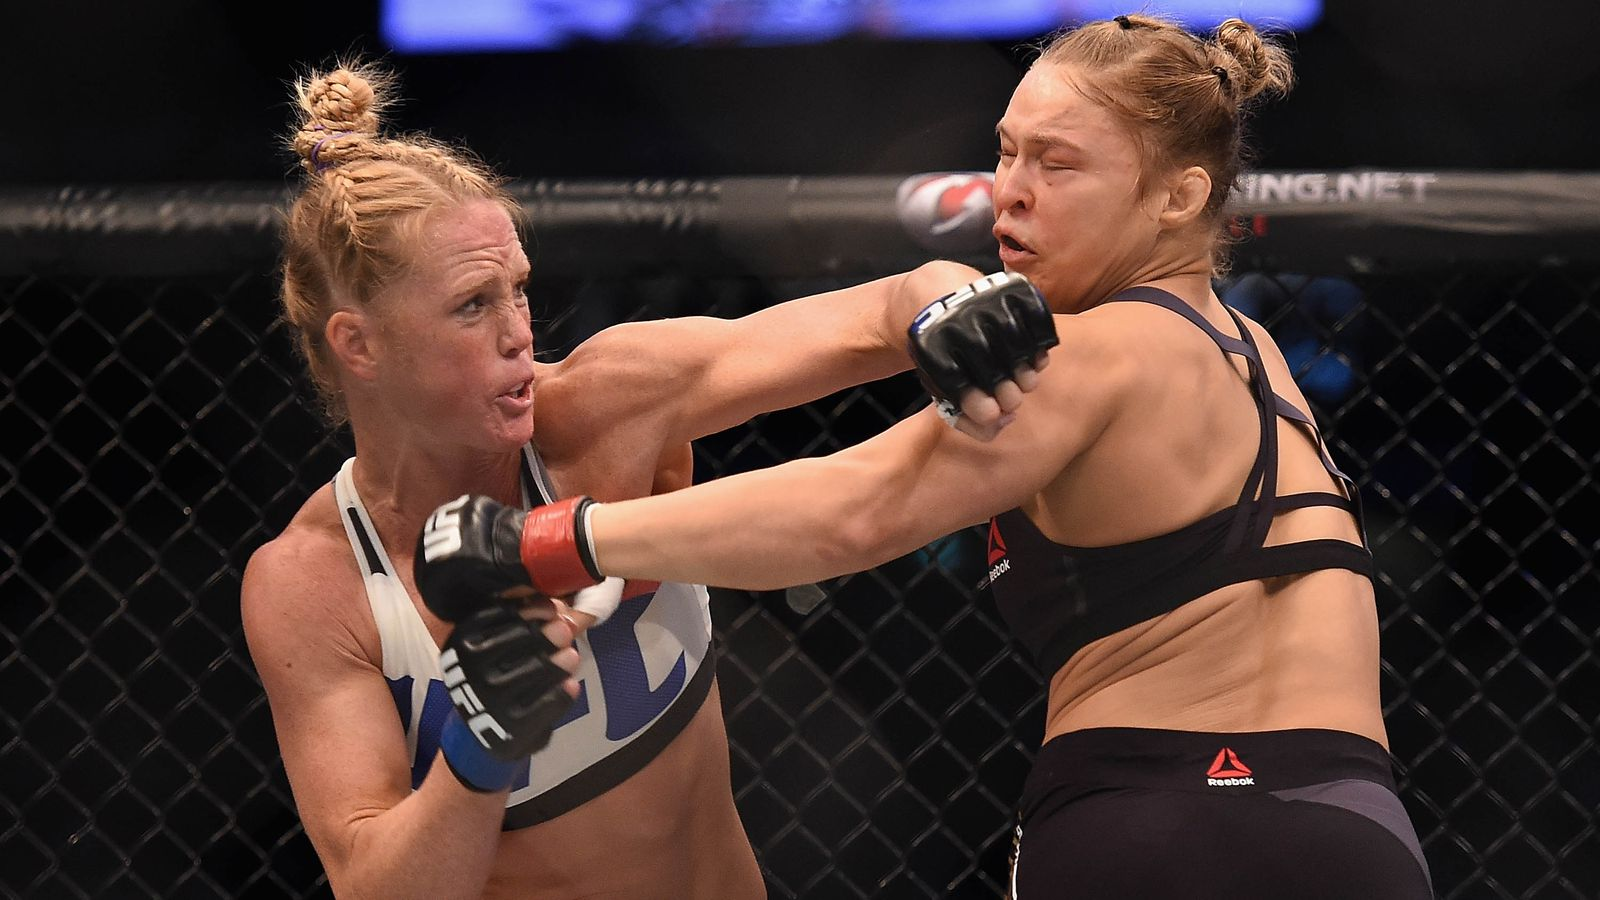 'Annoyed' Holly Holm competes for 'passion,' not UFC 'money fights' - MMAmania.com